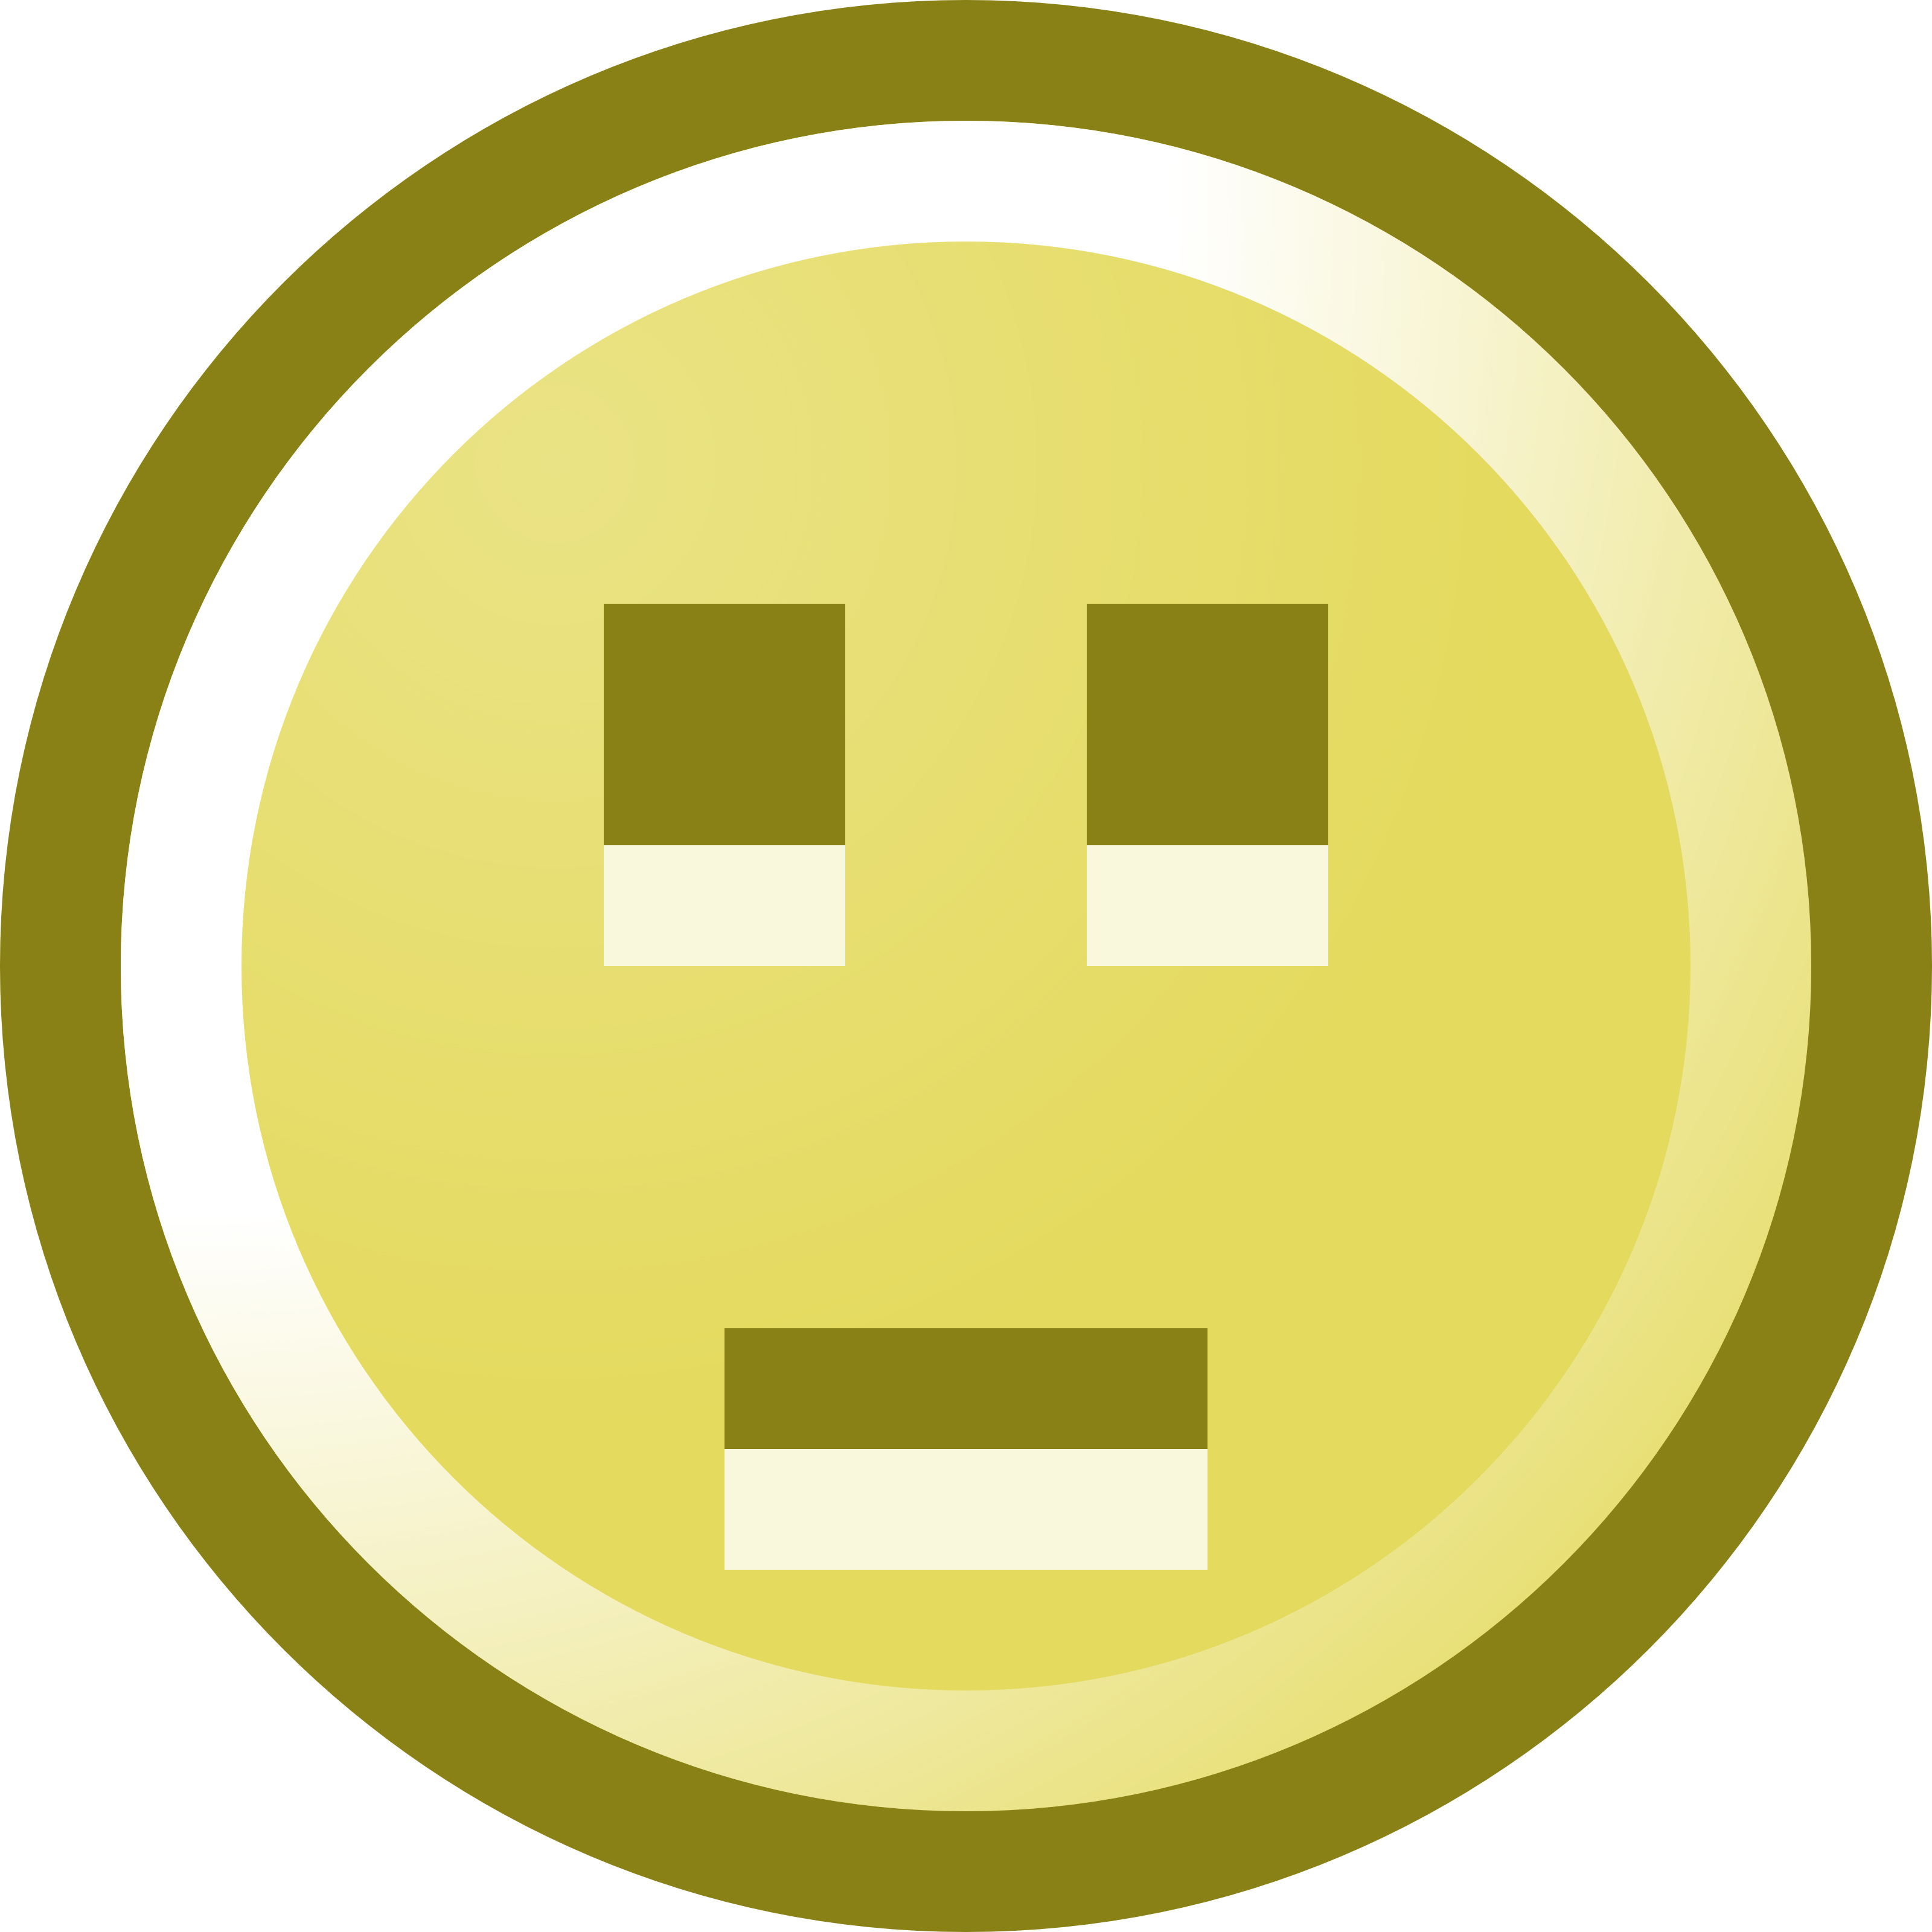 Emotionless Smiley Face Clip Art Illustration.